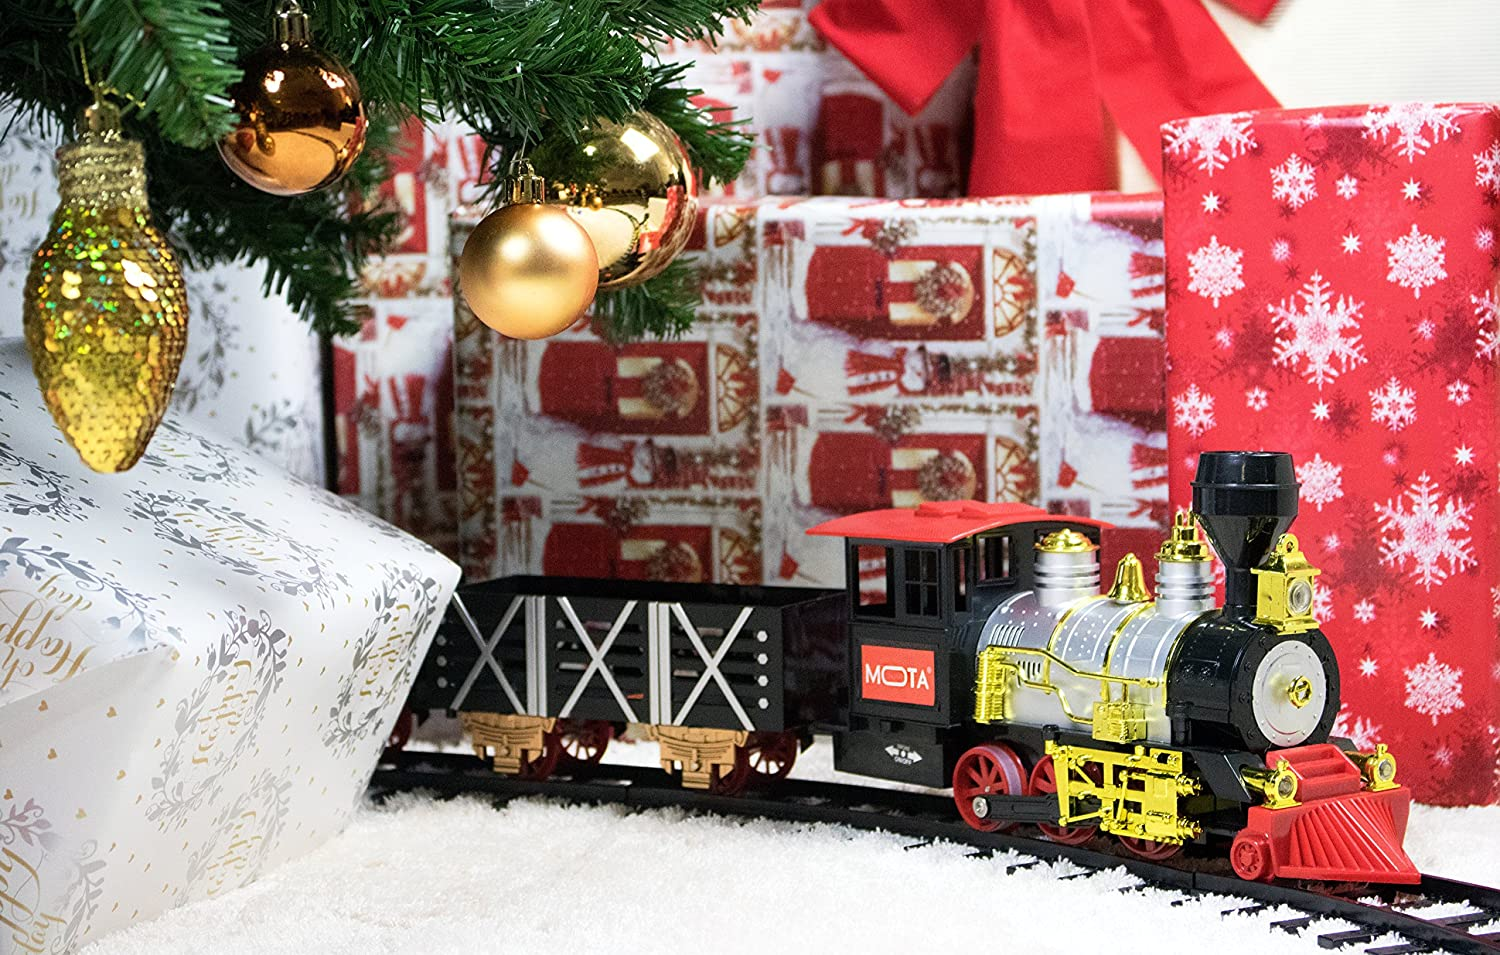 ... Under The Tree, This One Particular Is A Great Train Set. MOTA Classic Holiday  Train Set With Real Smoke Has An Authentic Lights And Sounds .